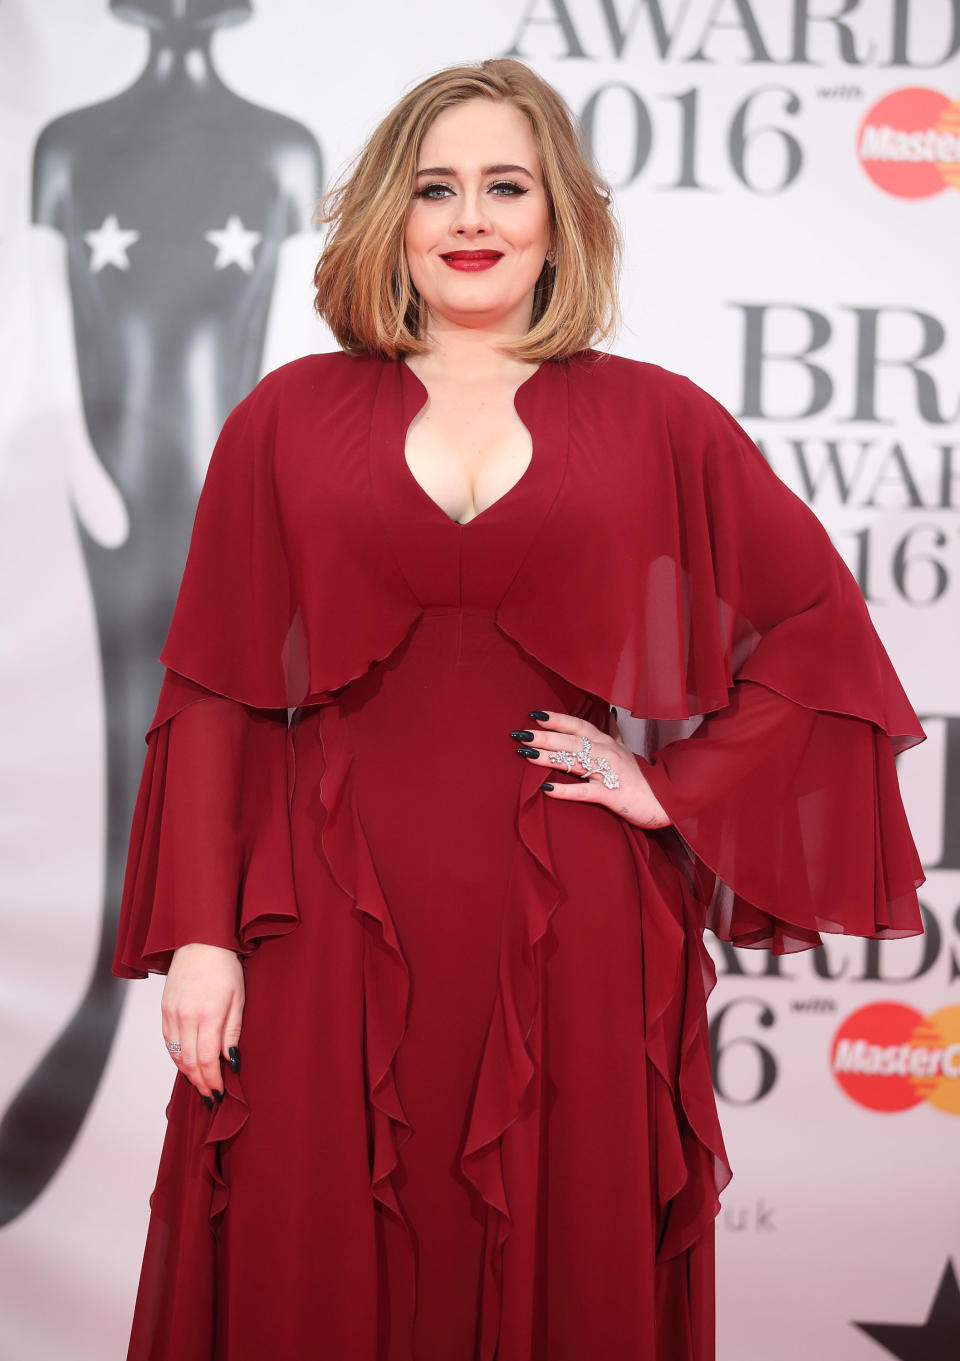 Adele attends the BRIT Awards 2016 at The O2 Arena on February 24, 2016 in London, England.